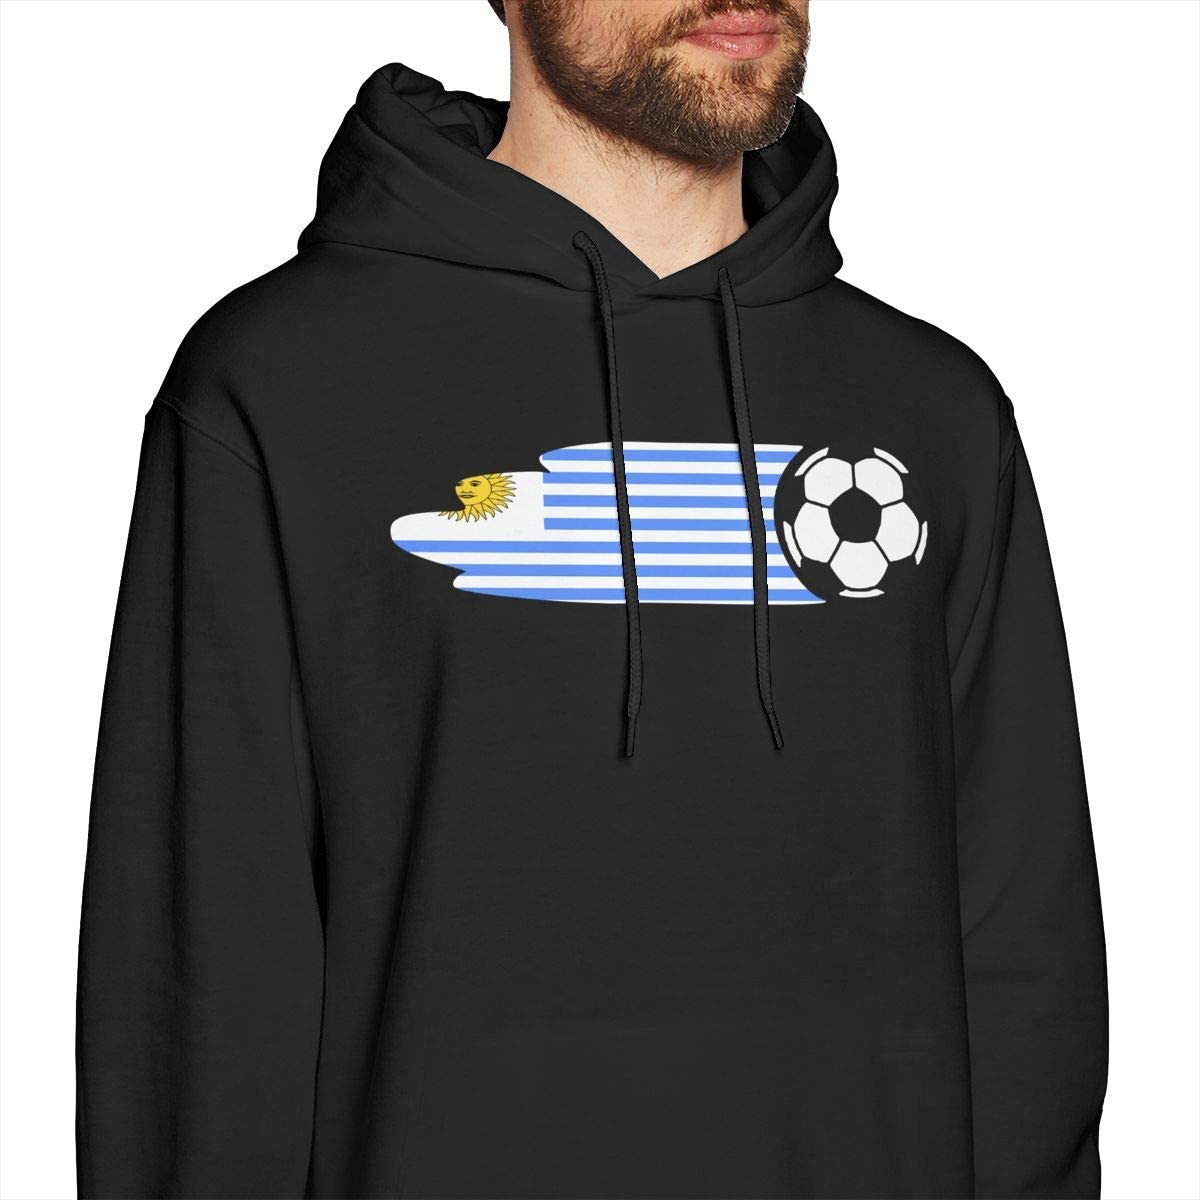 Mens Uruguay Flag Soccer Ball Hooded Sweatshirt Funny Graphic Athletic Pullover T-Shirt Black